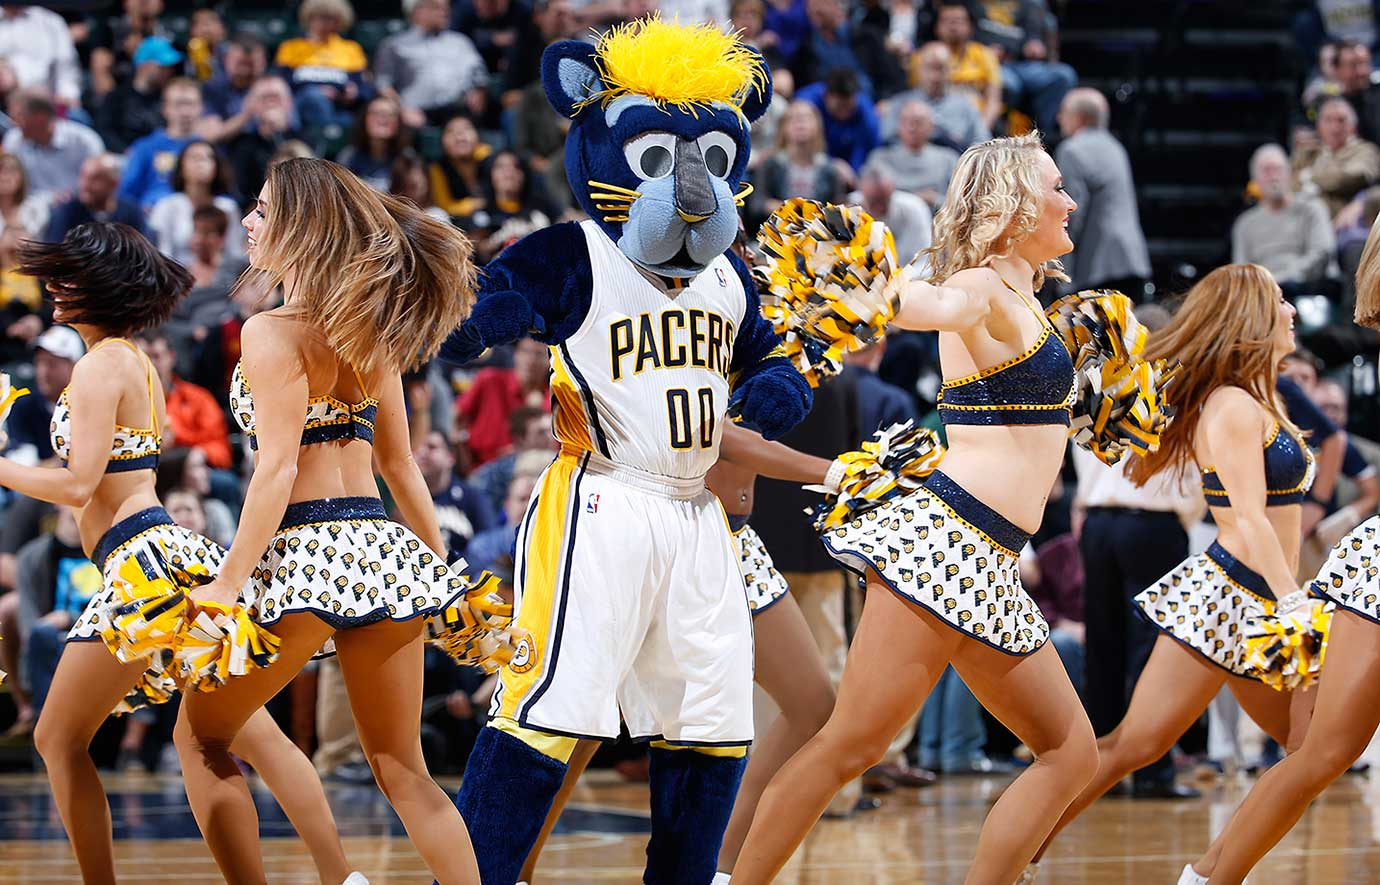 Indiana Pacers mascot Boomer dances with cheerleaders during a timeout in the game against the San Antonio Spurs.